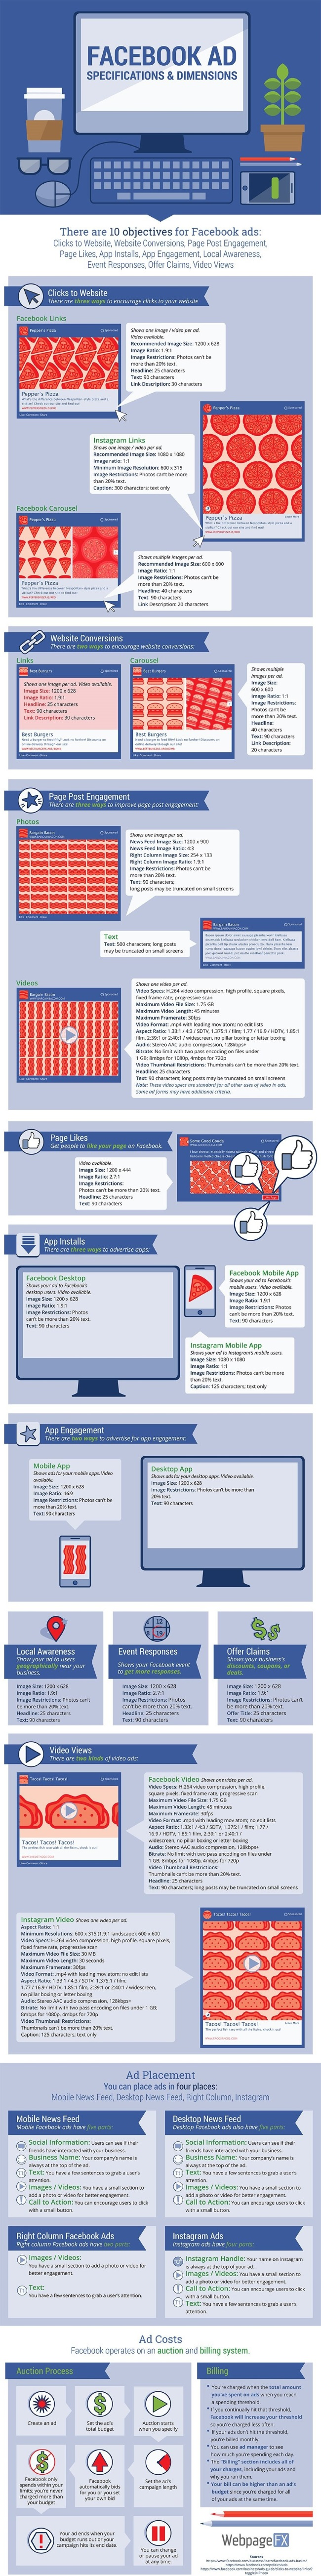 Ad Specs for Facebook and Instagram Infographic